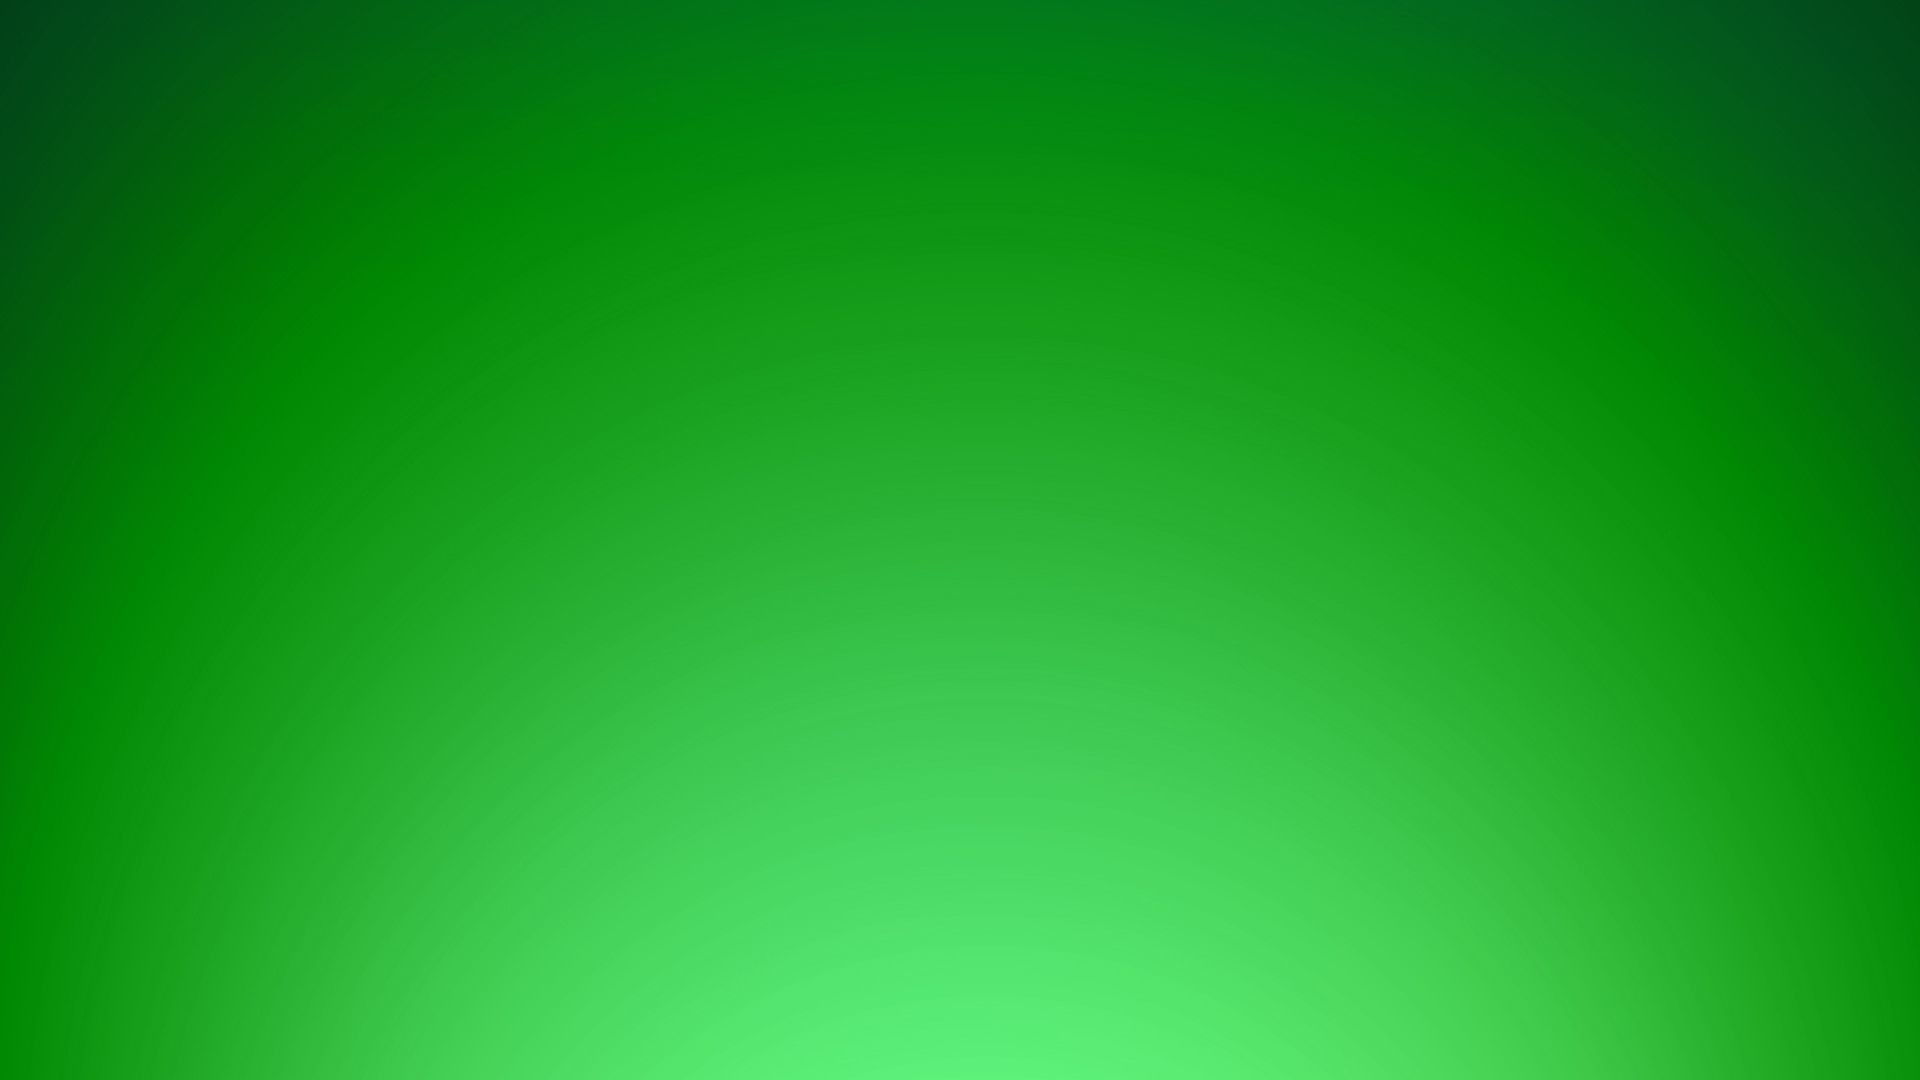 1920x1080 Bright Green Wallpaper - Top Backgrounds & Wallpapers